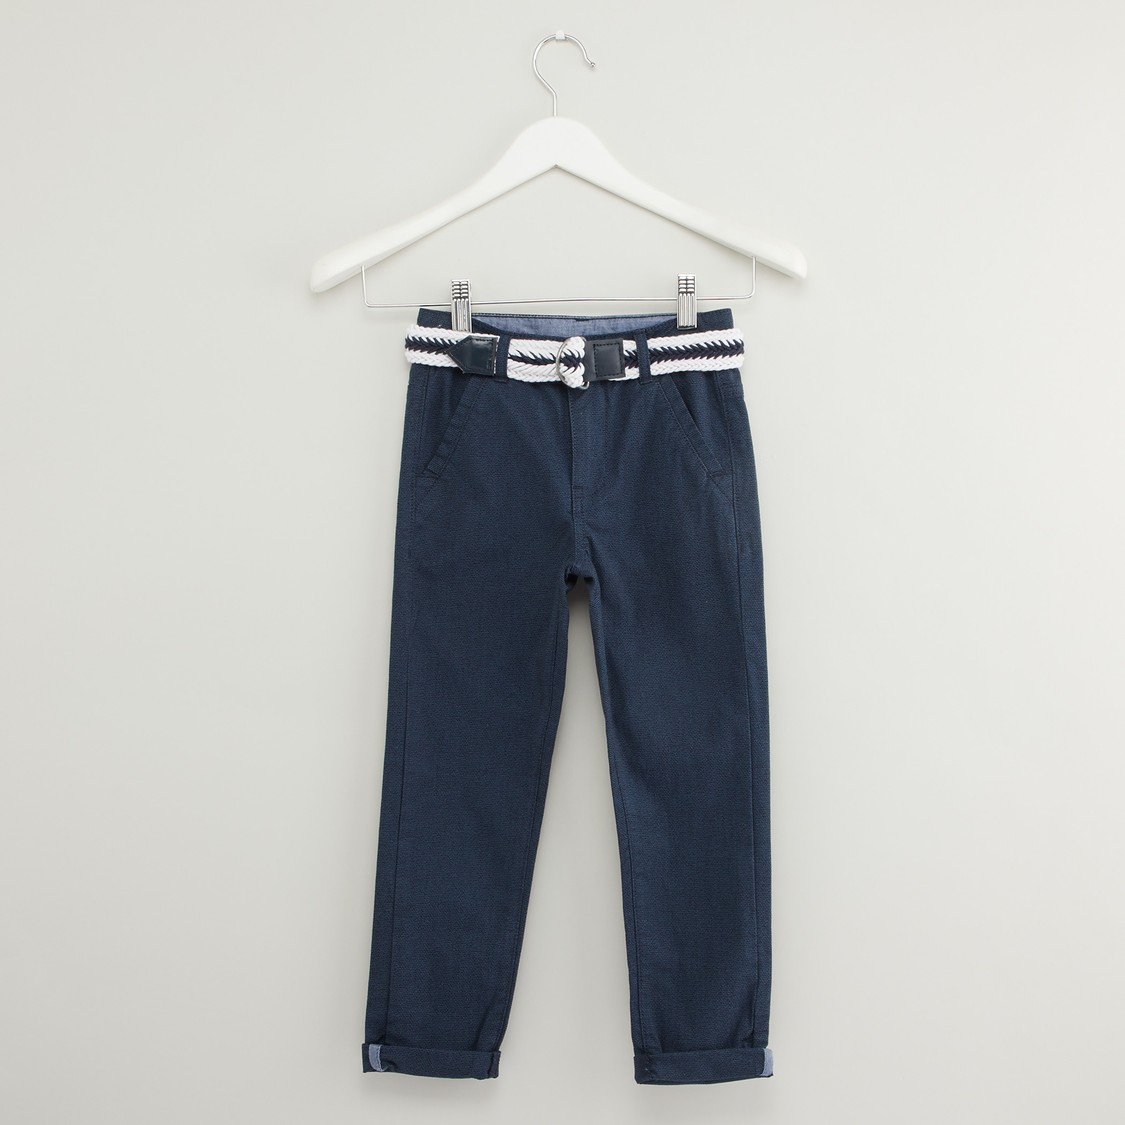 Textured Pants with Belt and Pocket Detail